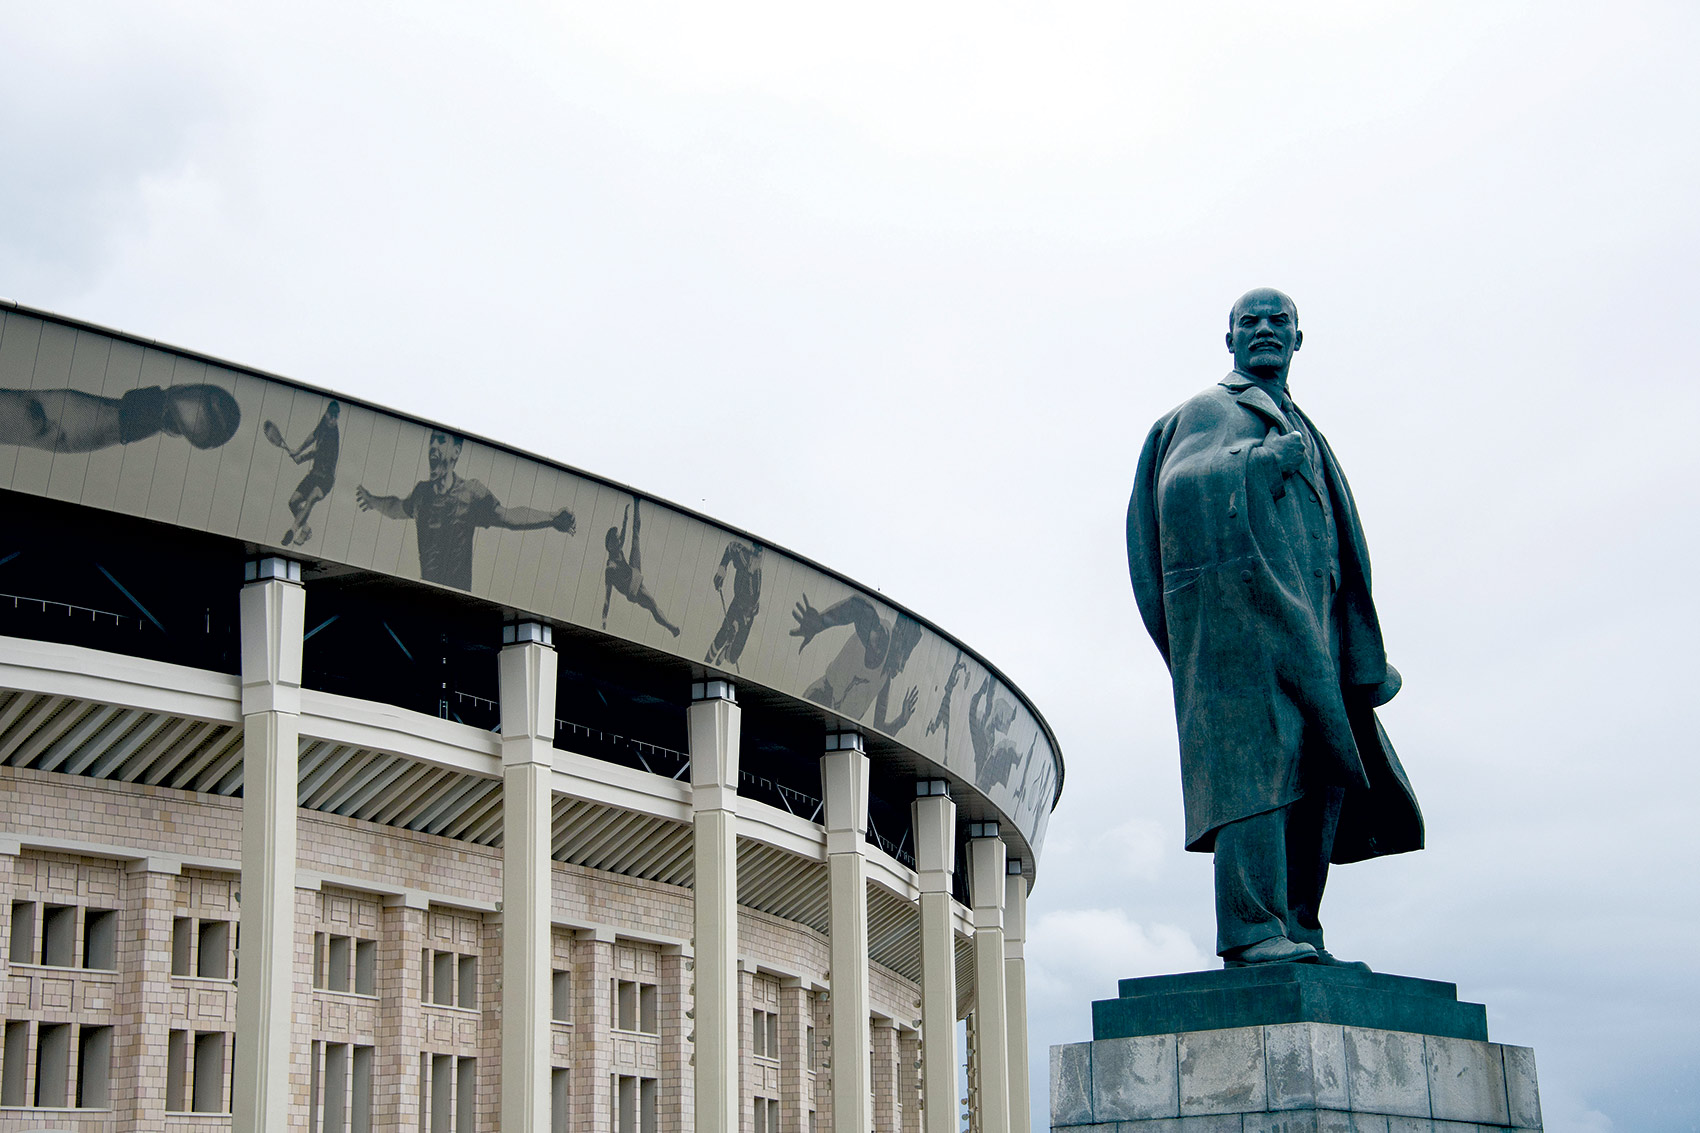 Statue of Lenin outside the Luzhniki Olympic Stadium, Moscow.